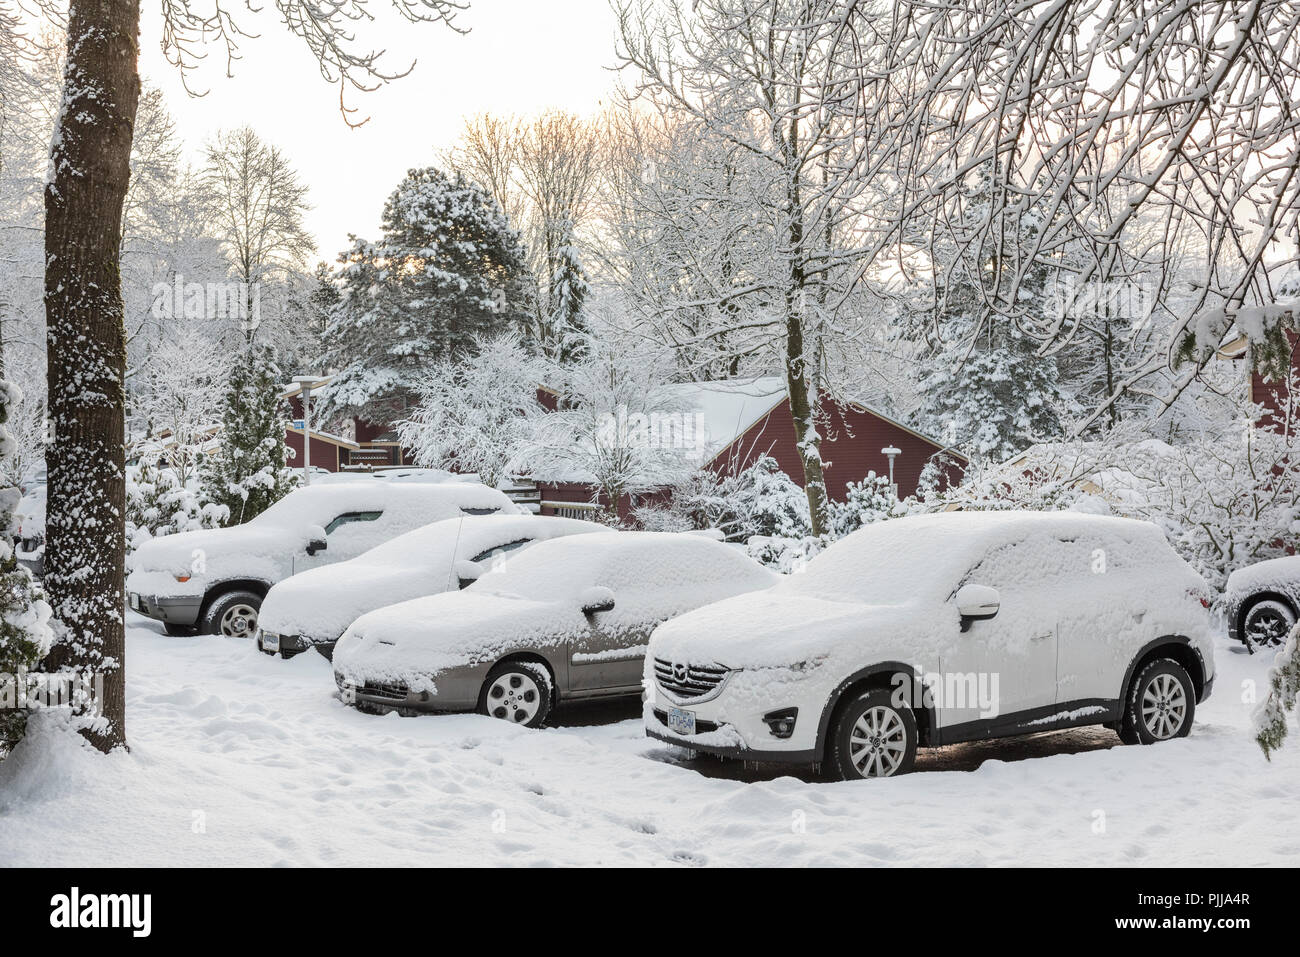 Parked automobiles covered in snow. - Stock Image